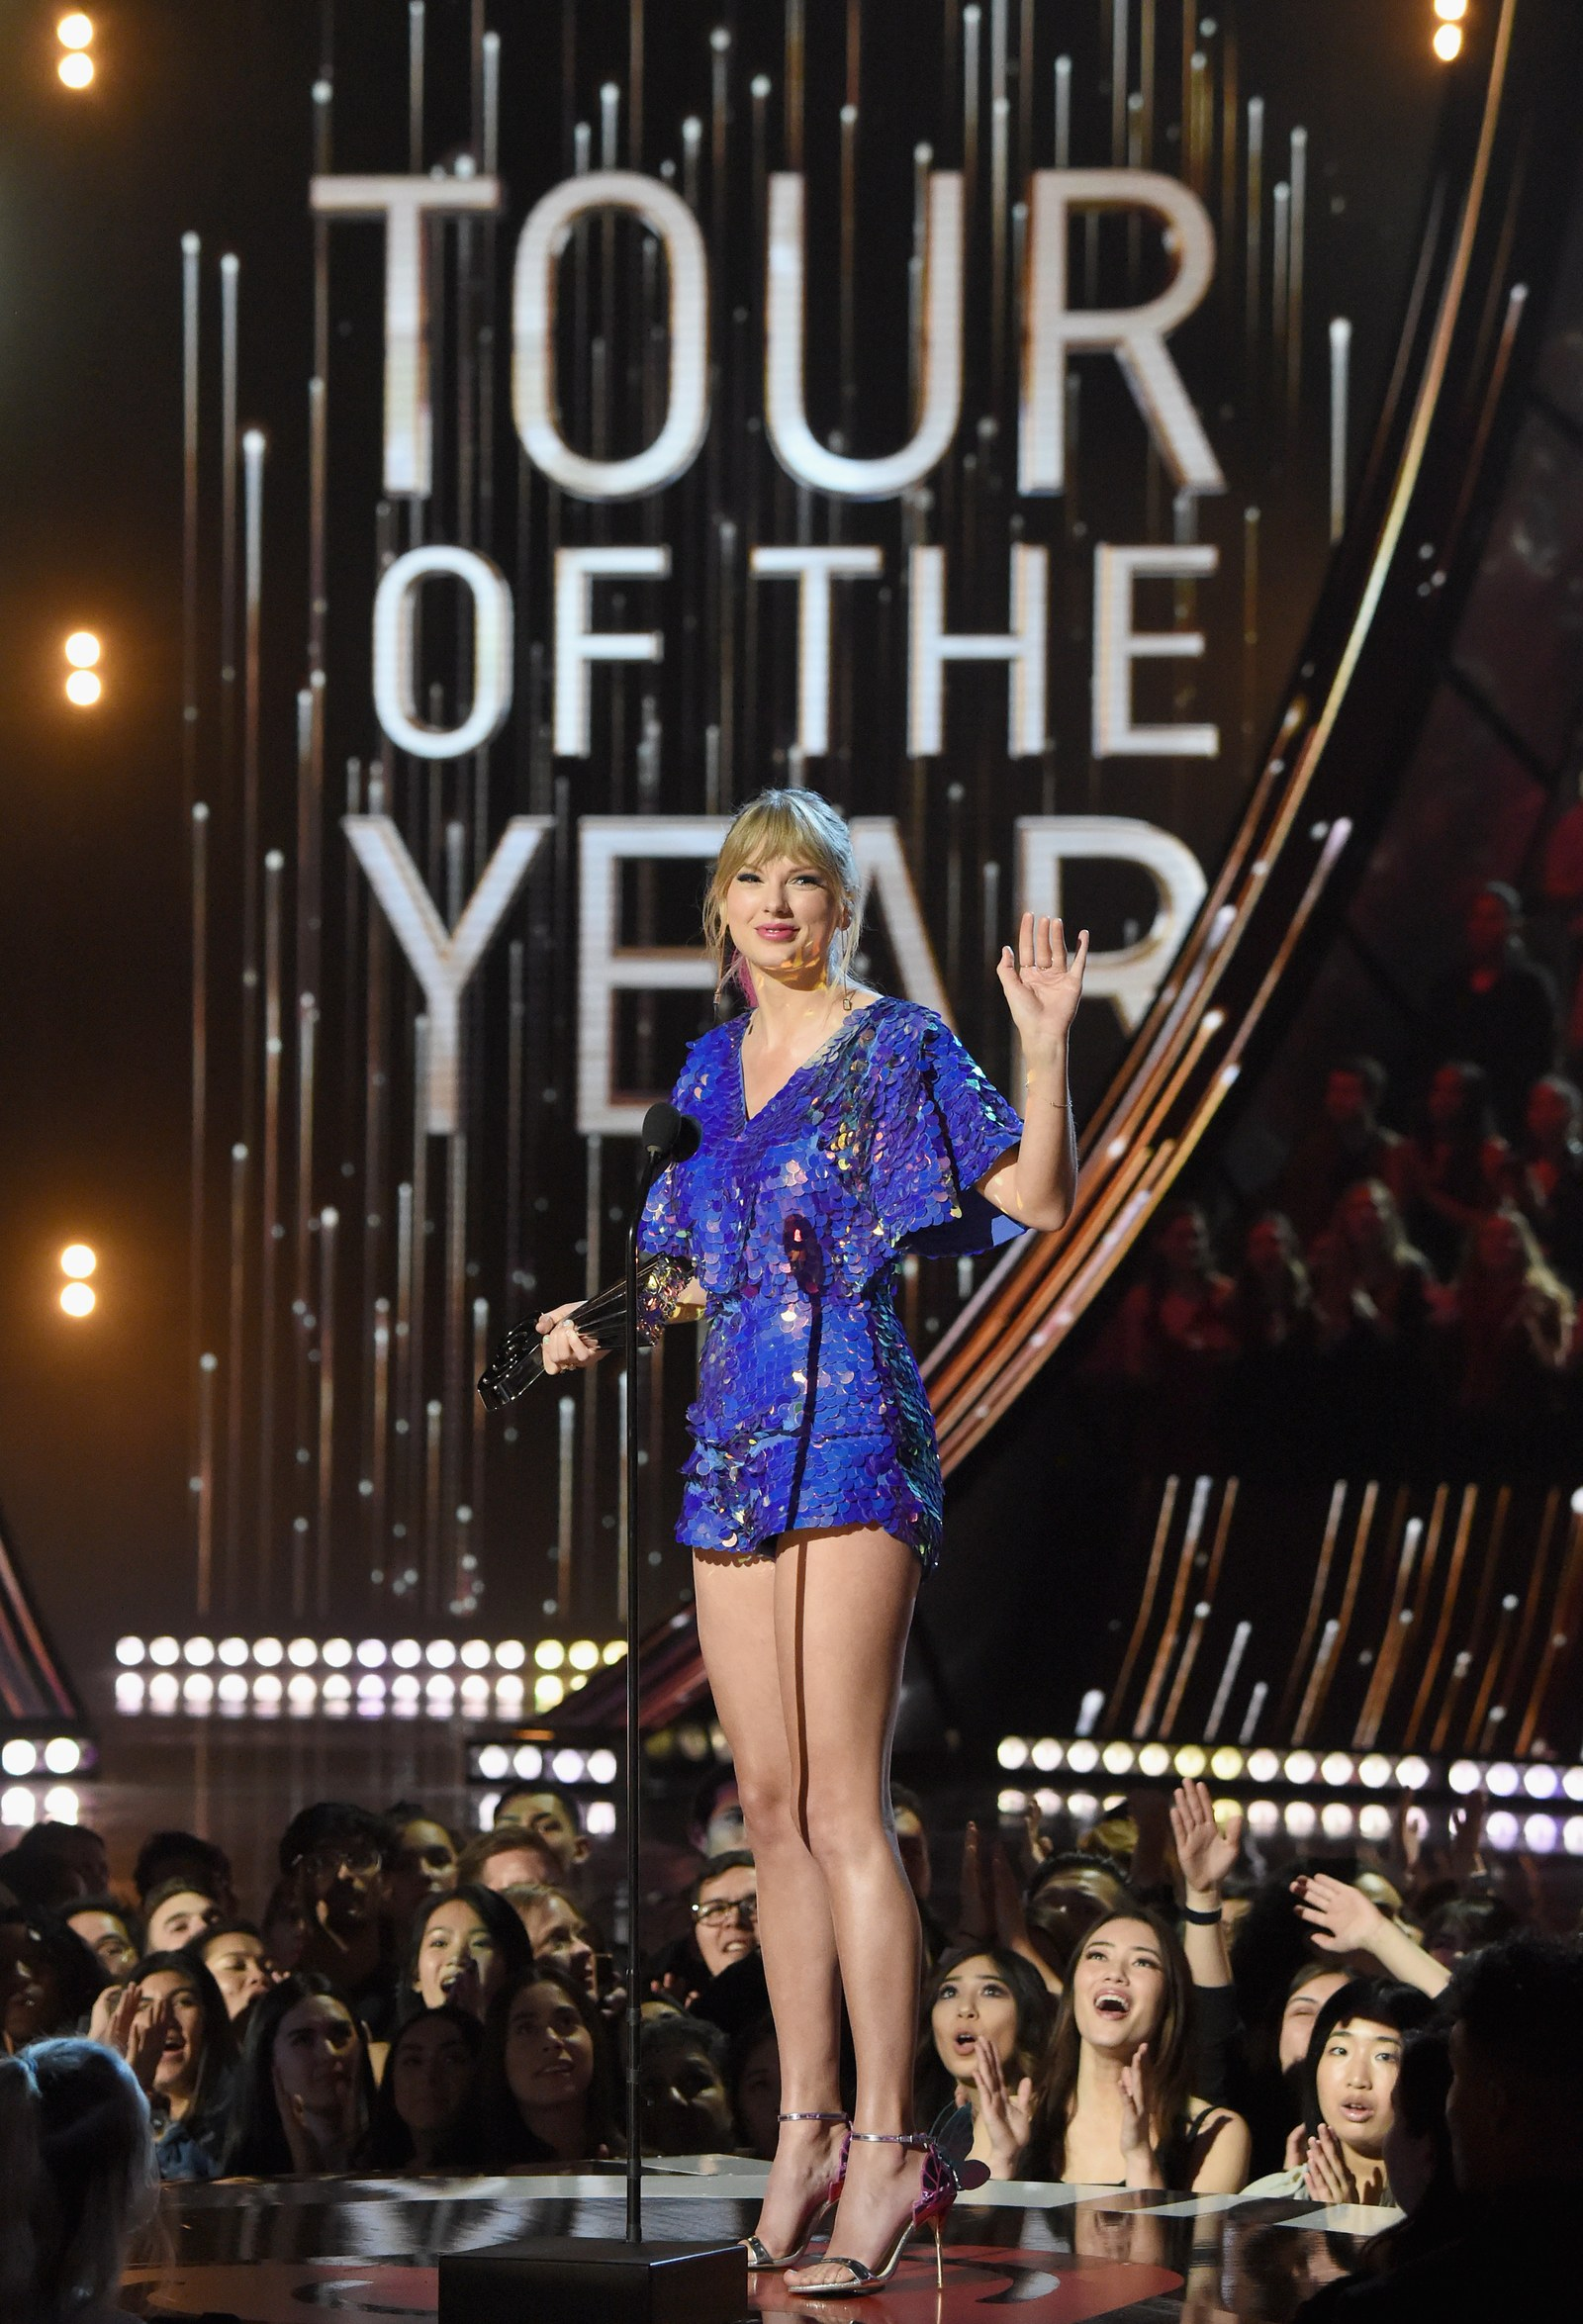 Taylor Swift accepts the Tour of the Year award at the iHeart Radio Music Awards